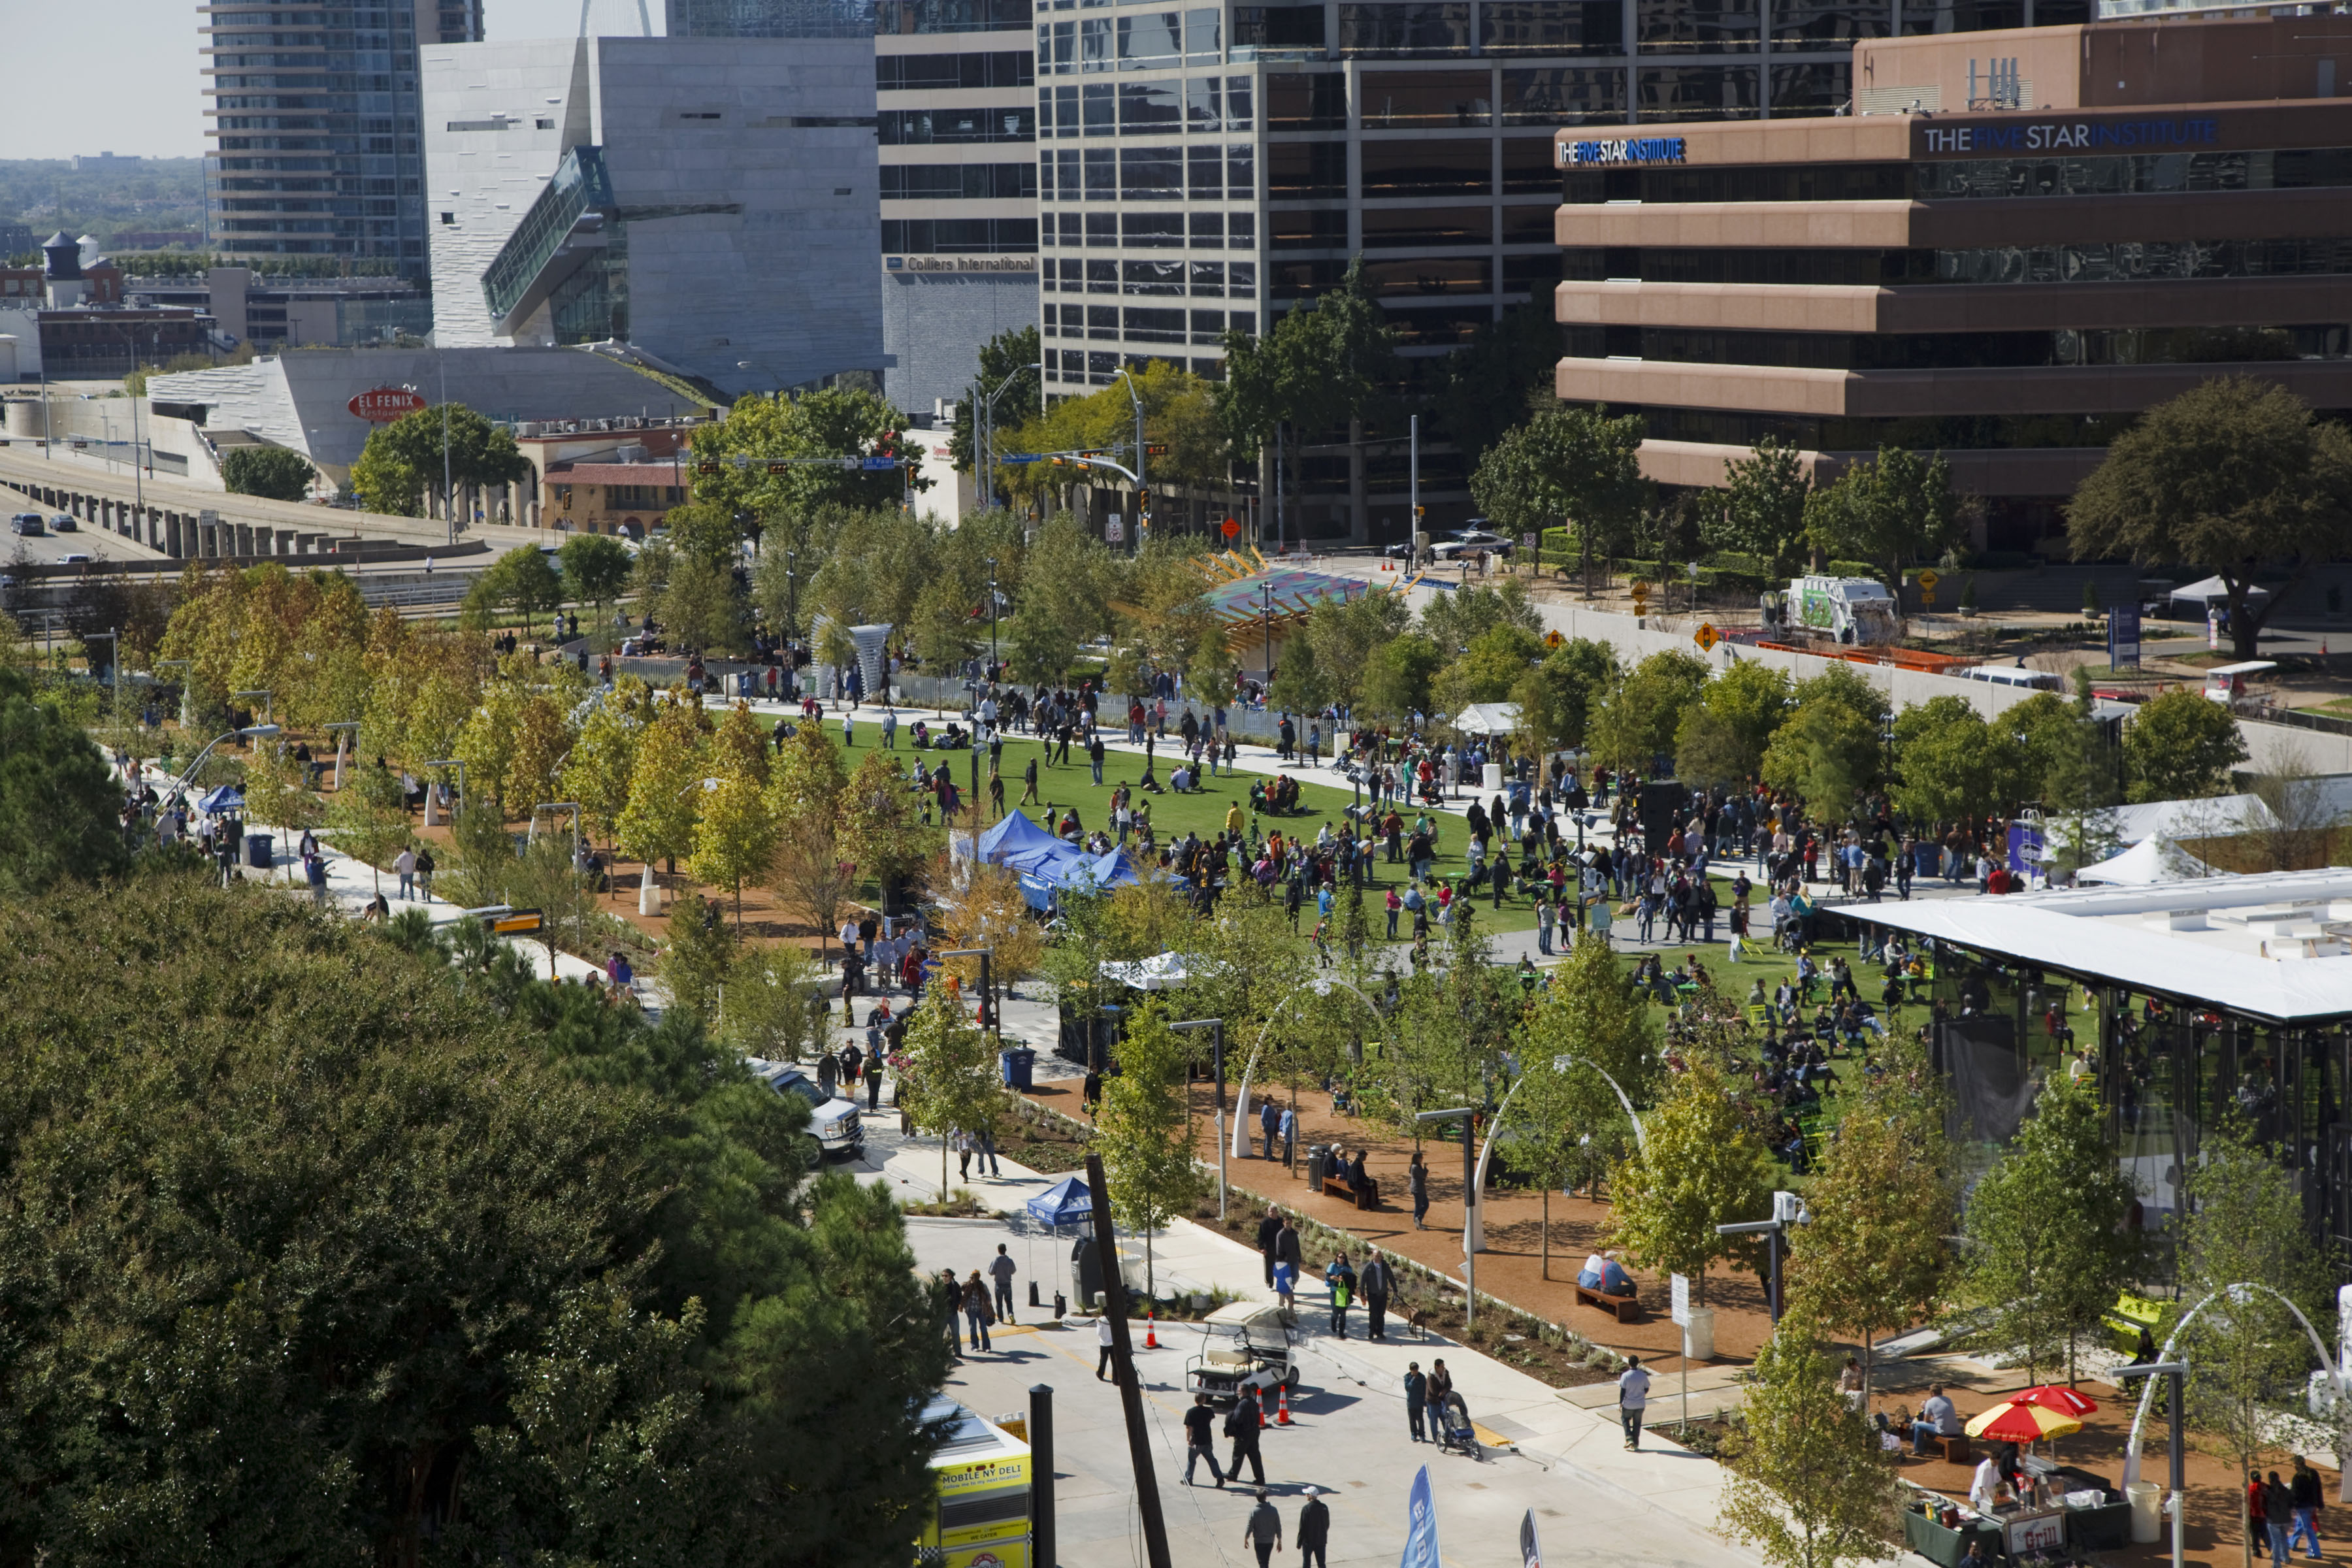 Photo Credit: Klyde Warren Park